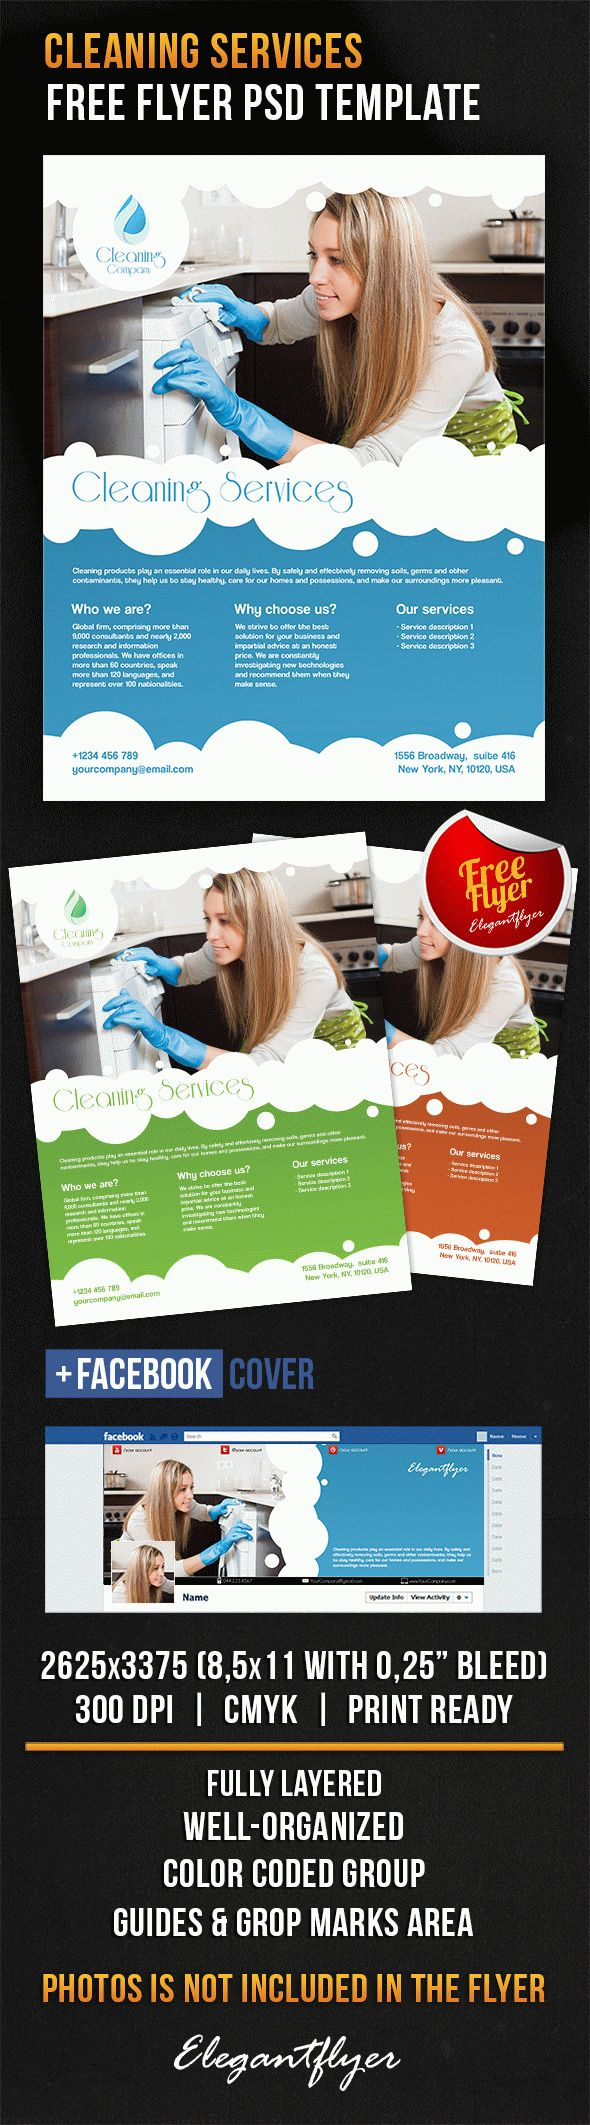 cleaning brochure templates free - cleaning services free flyer psd template by elegantflyer